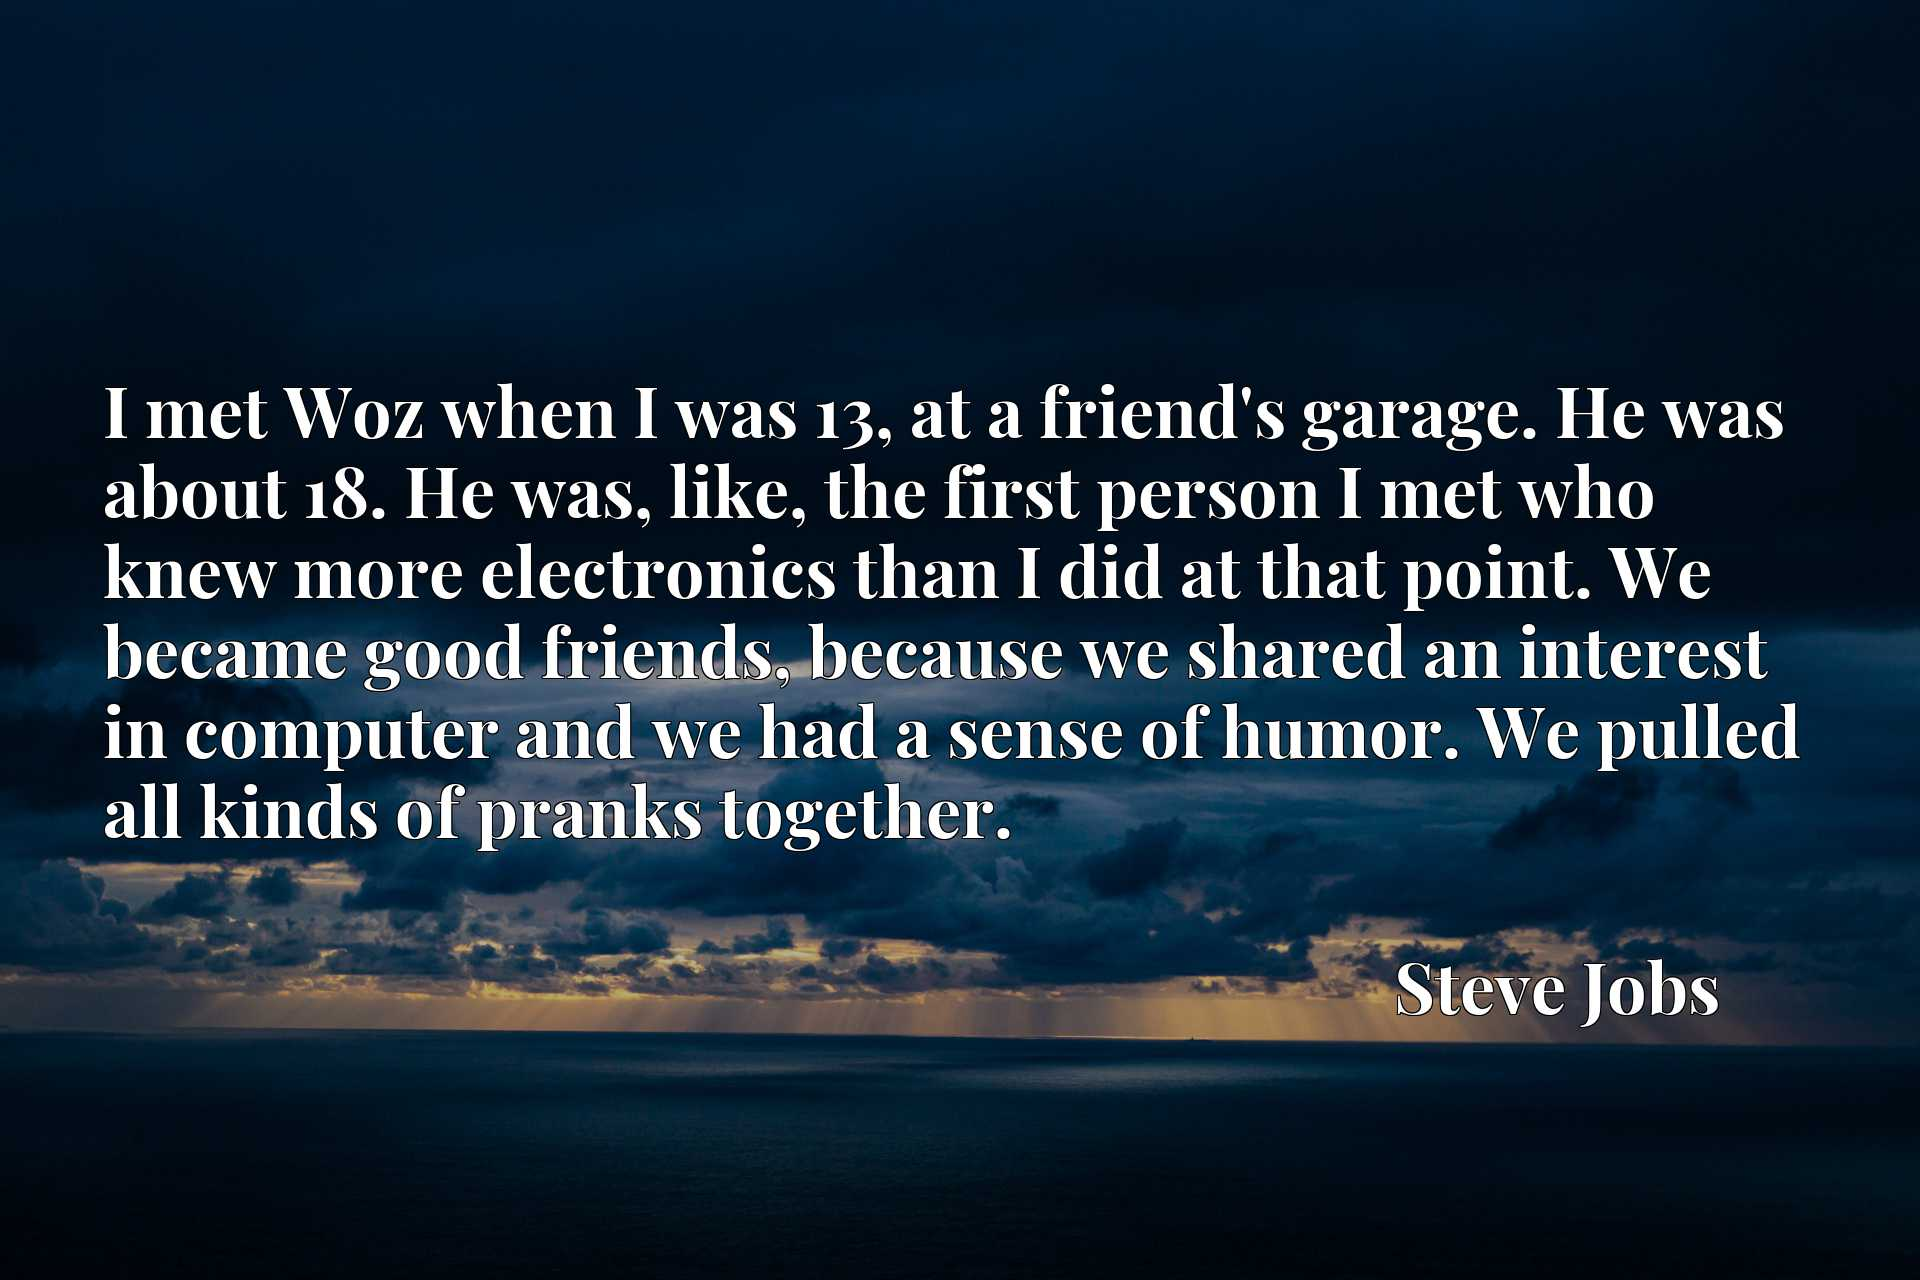 I met Woz when I was 13, at a friend's garage. He was about 18. He was, like, the first person I met who knew more electronics than I did at that point. We became good friends, because we shared an interest in computer and we had a sense of humor. We pulled all kinds of pranks together.